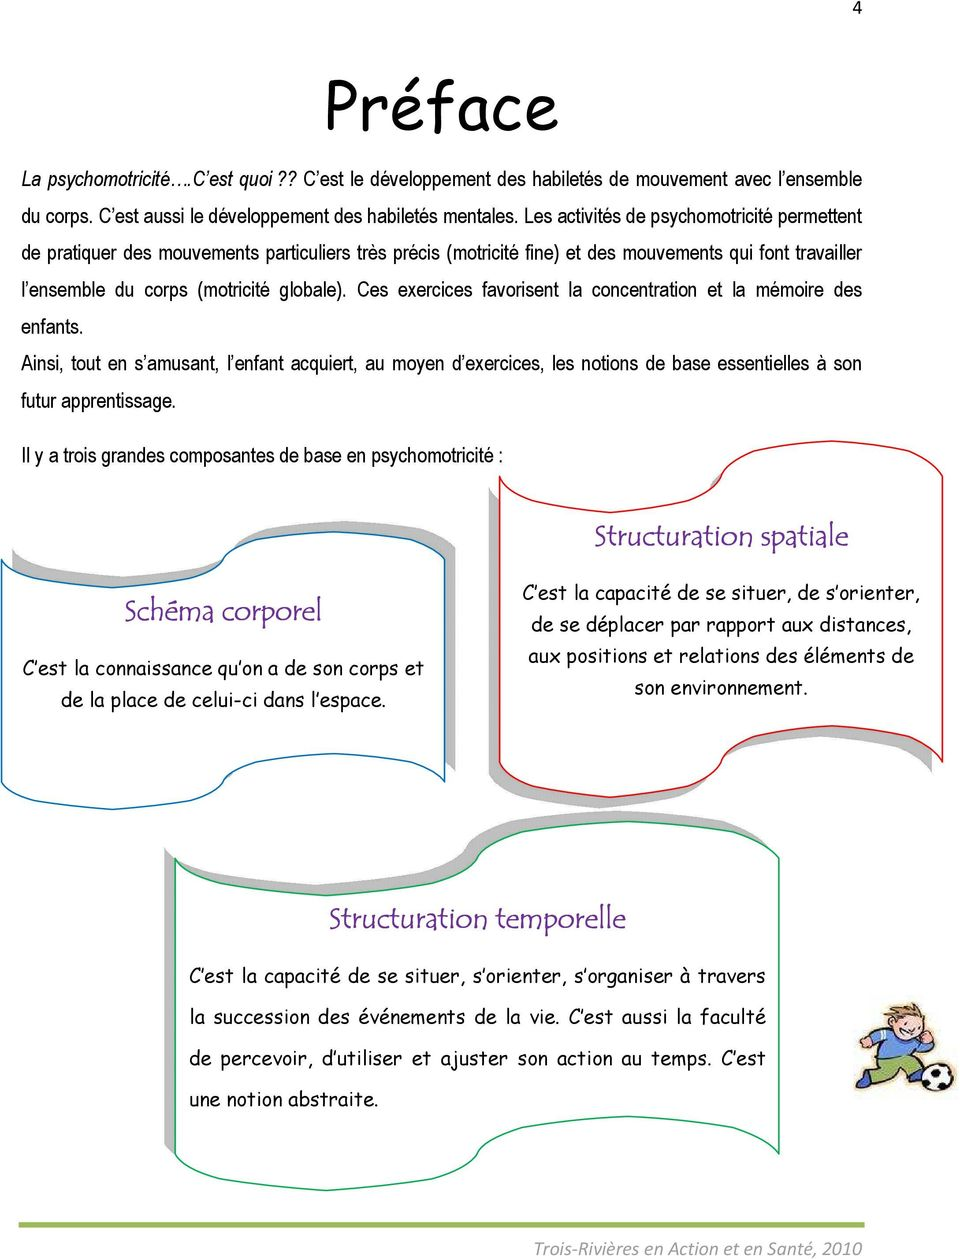 Ces exercices favorisent la concentration et la mémoire des enfants. Ainsi, tout en s amusant, l enfant acquiert, au moyen d exercices, les notions de base essentielles à son futur apprentissage.